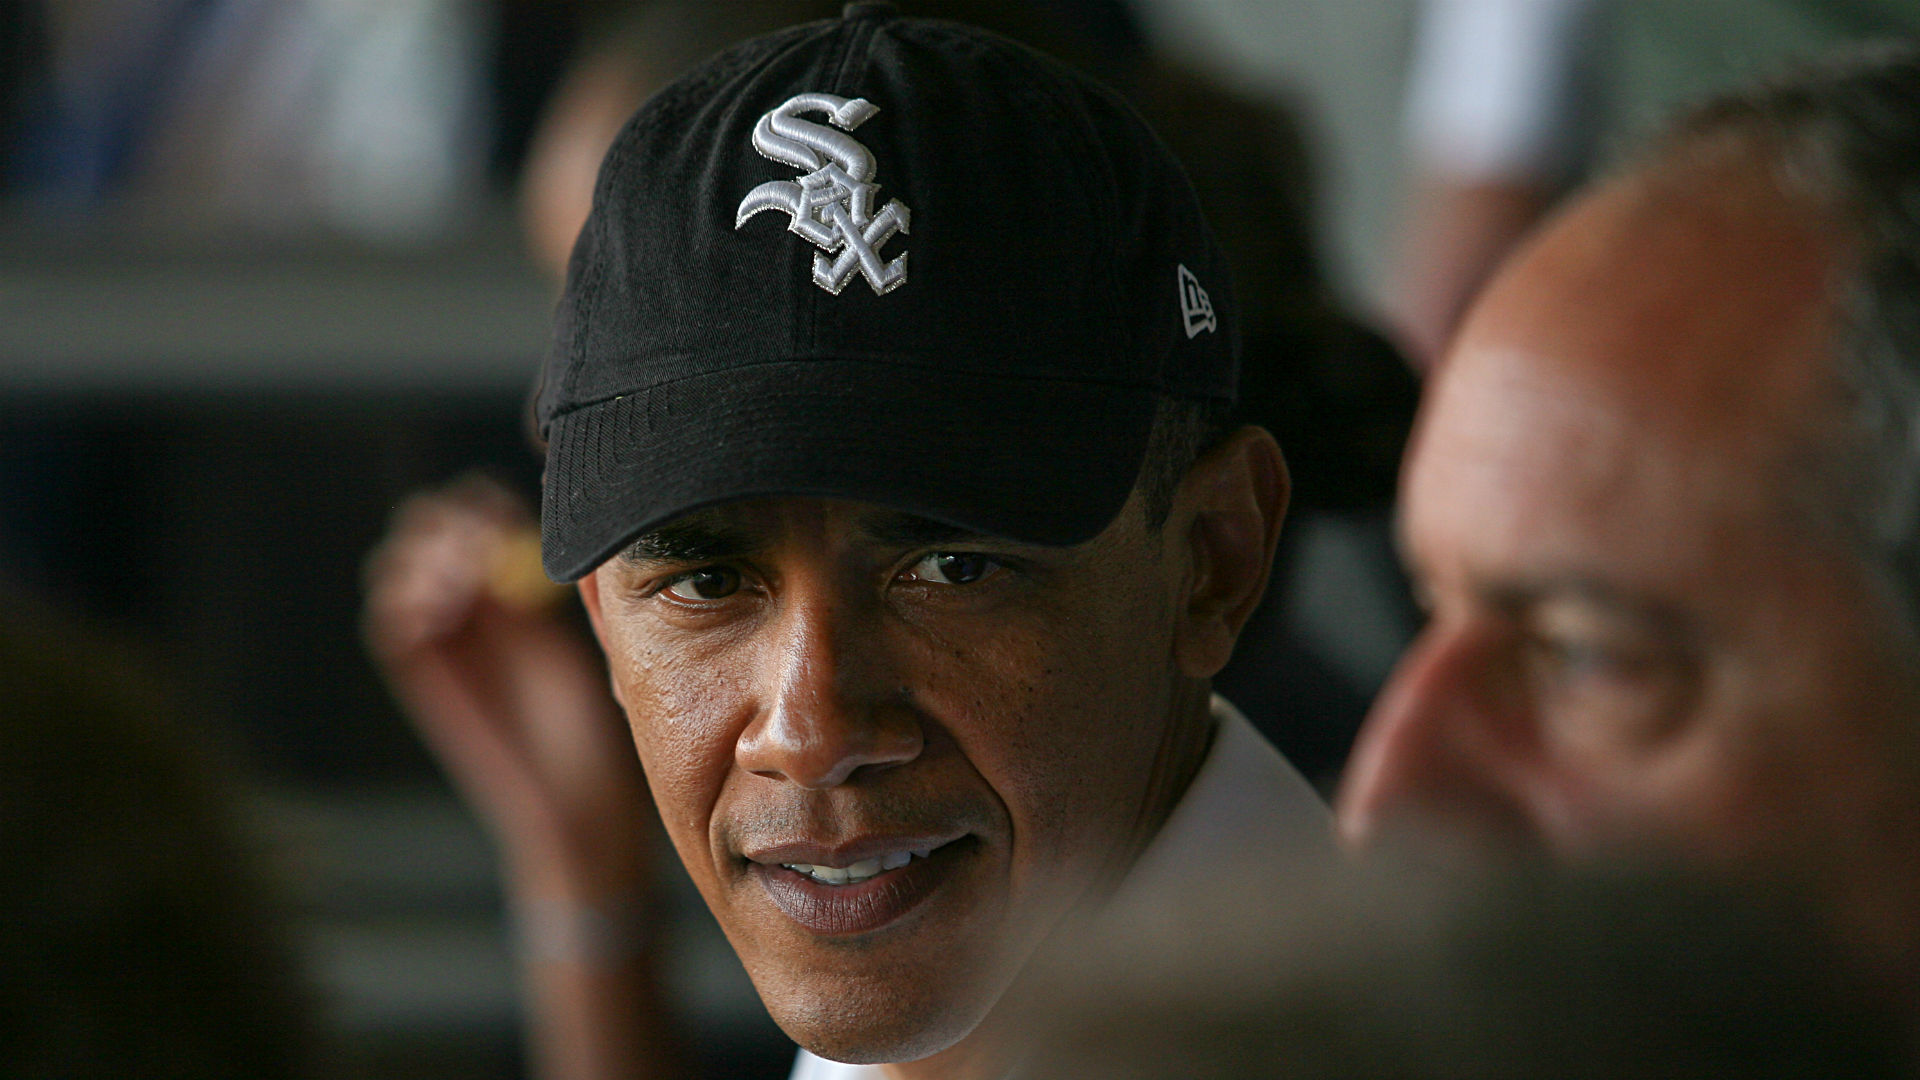 Barack-Obama-White-Sox-101315-Getty-FTR.jpg